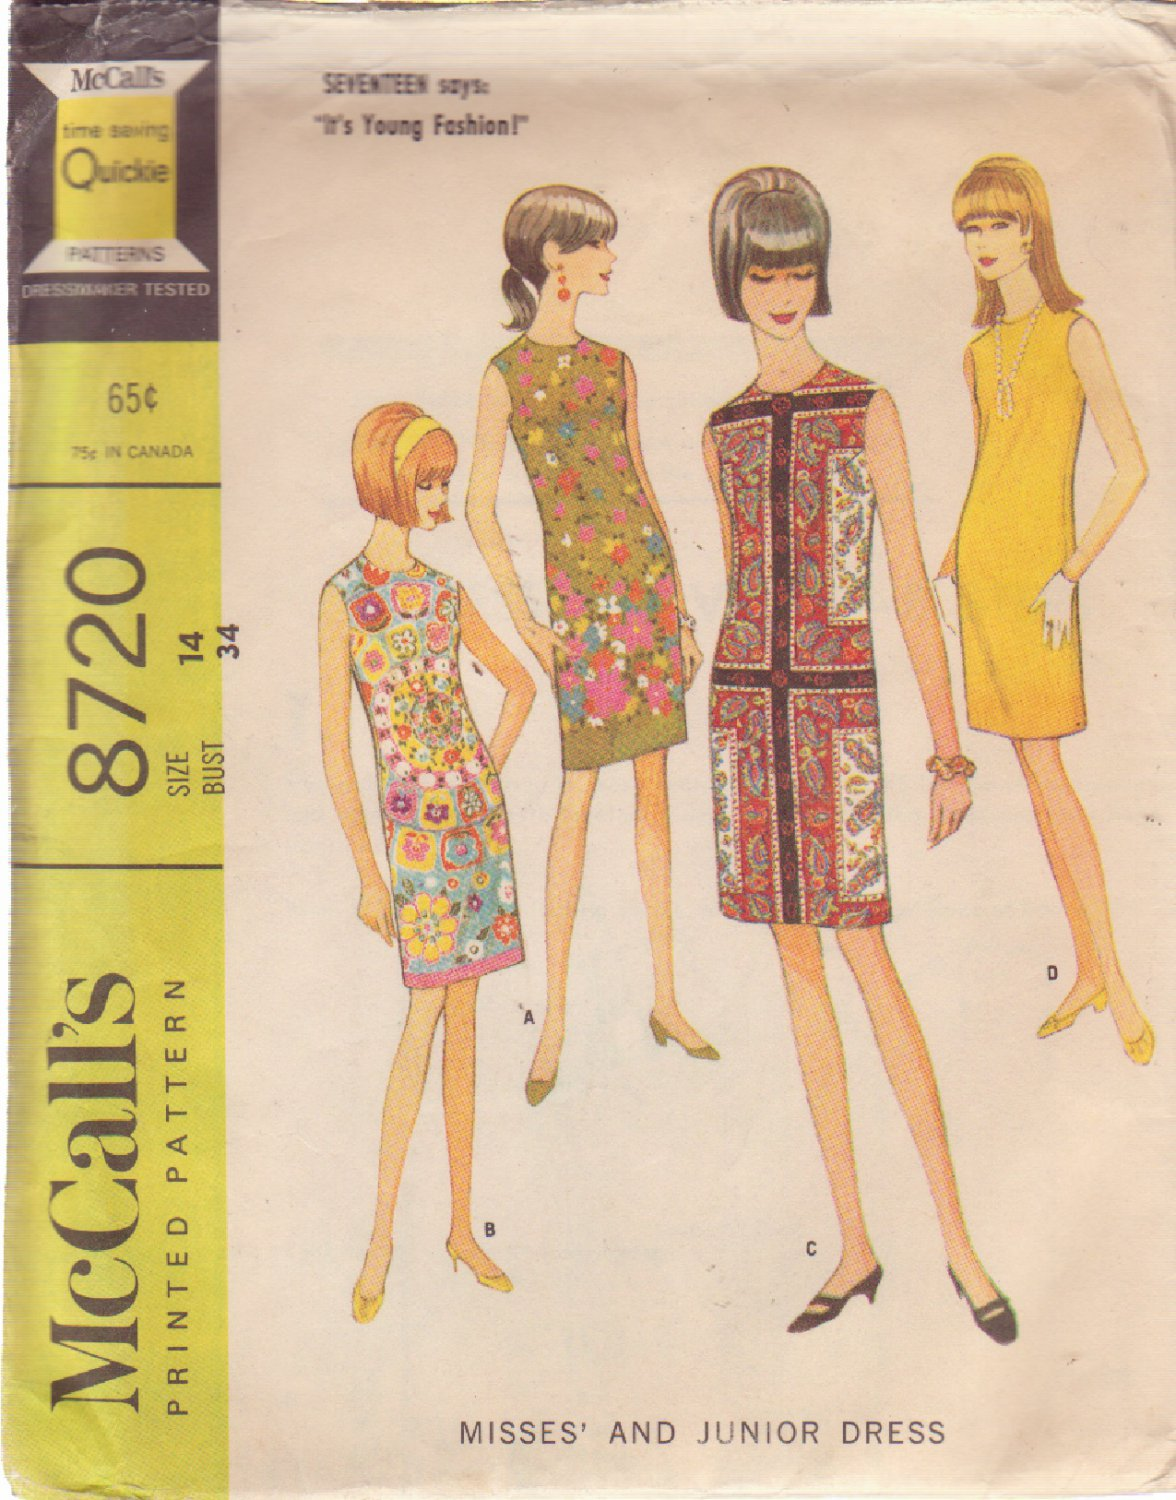 McCALL'S VINTAGE PATTERN 8720 MISSES' DRESS SIZE 14